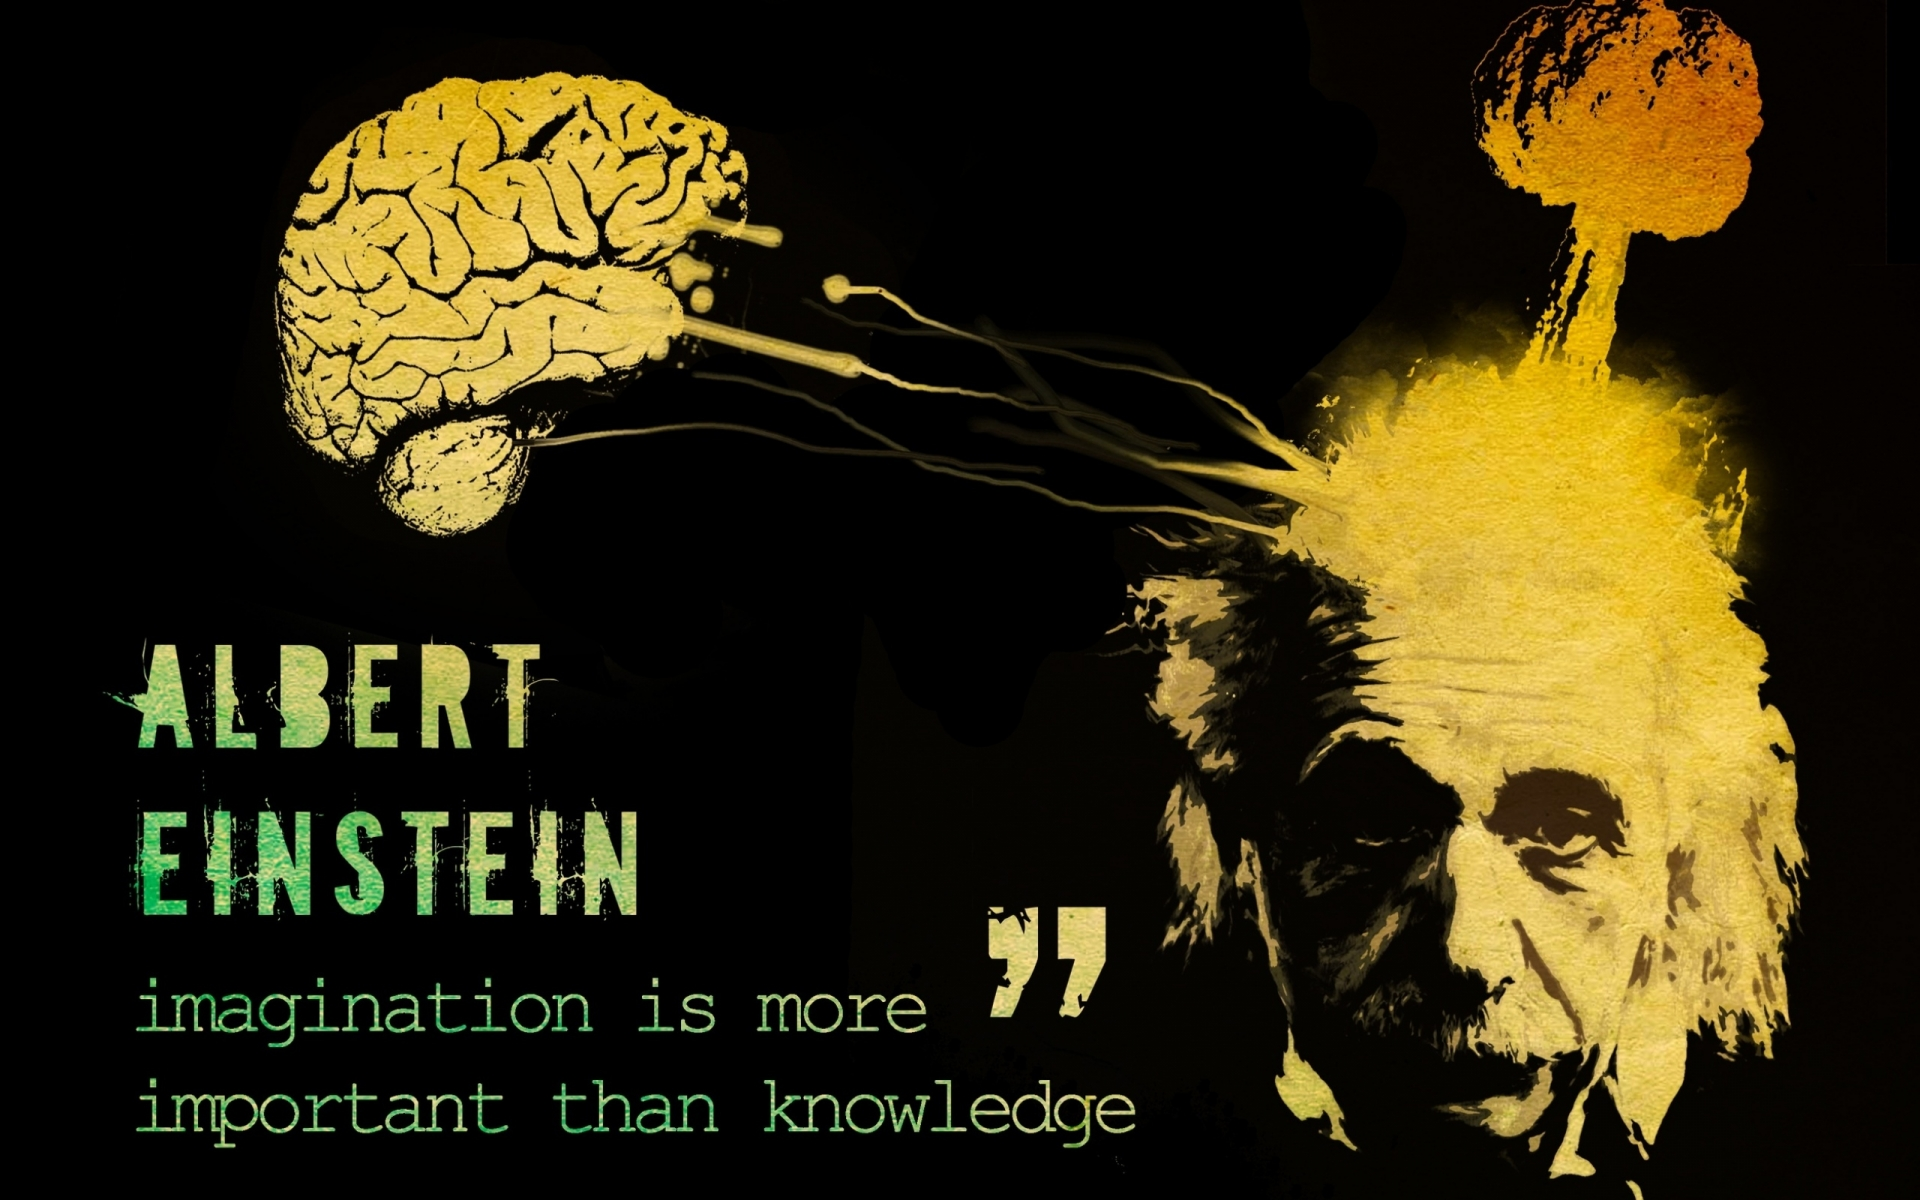 Marilyn Monroe Quotes Iphone Wallpaper Albert Einstein Brain Explode Wallpapers Albert Einstein